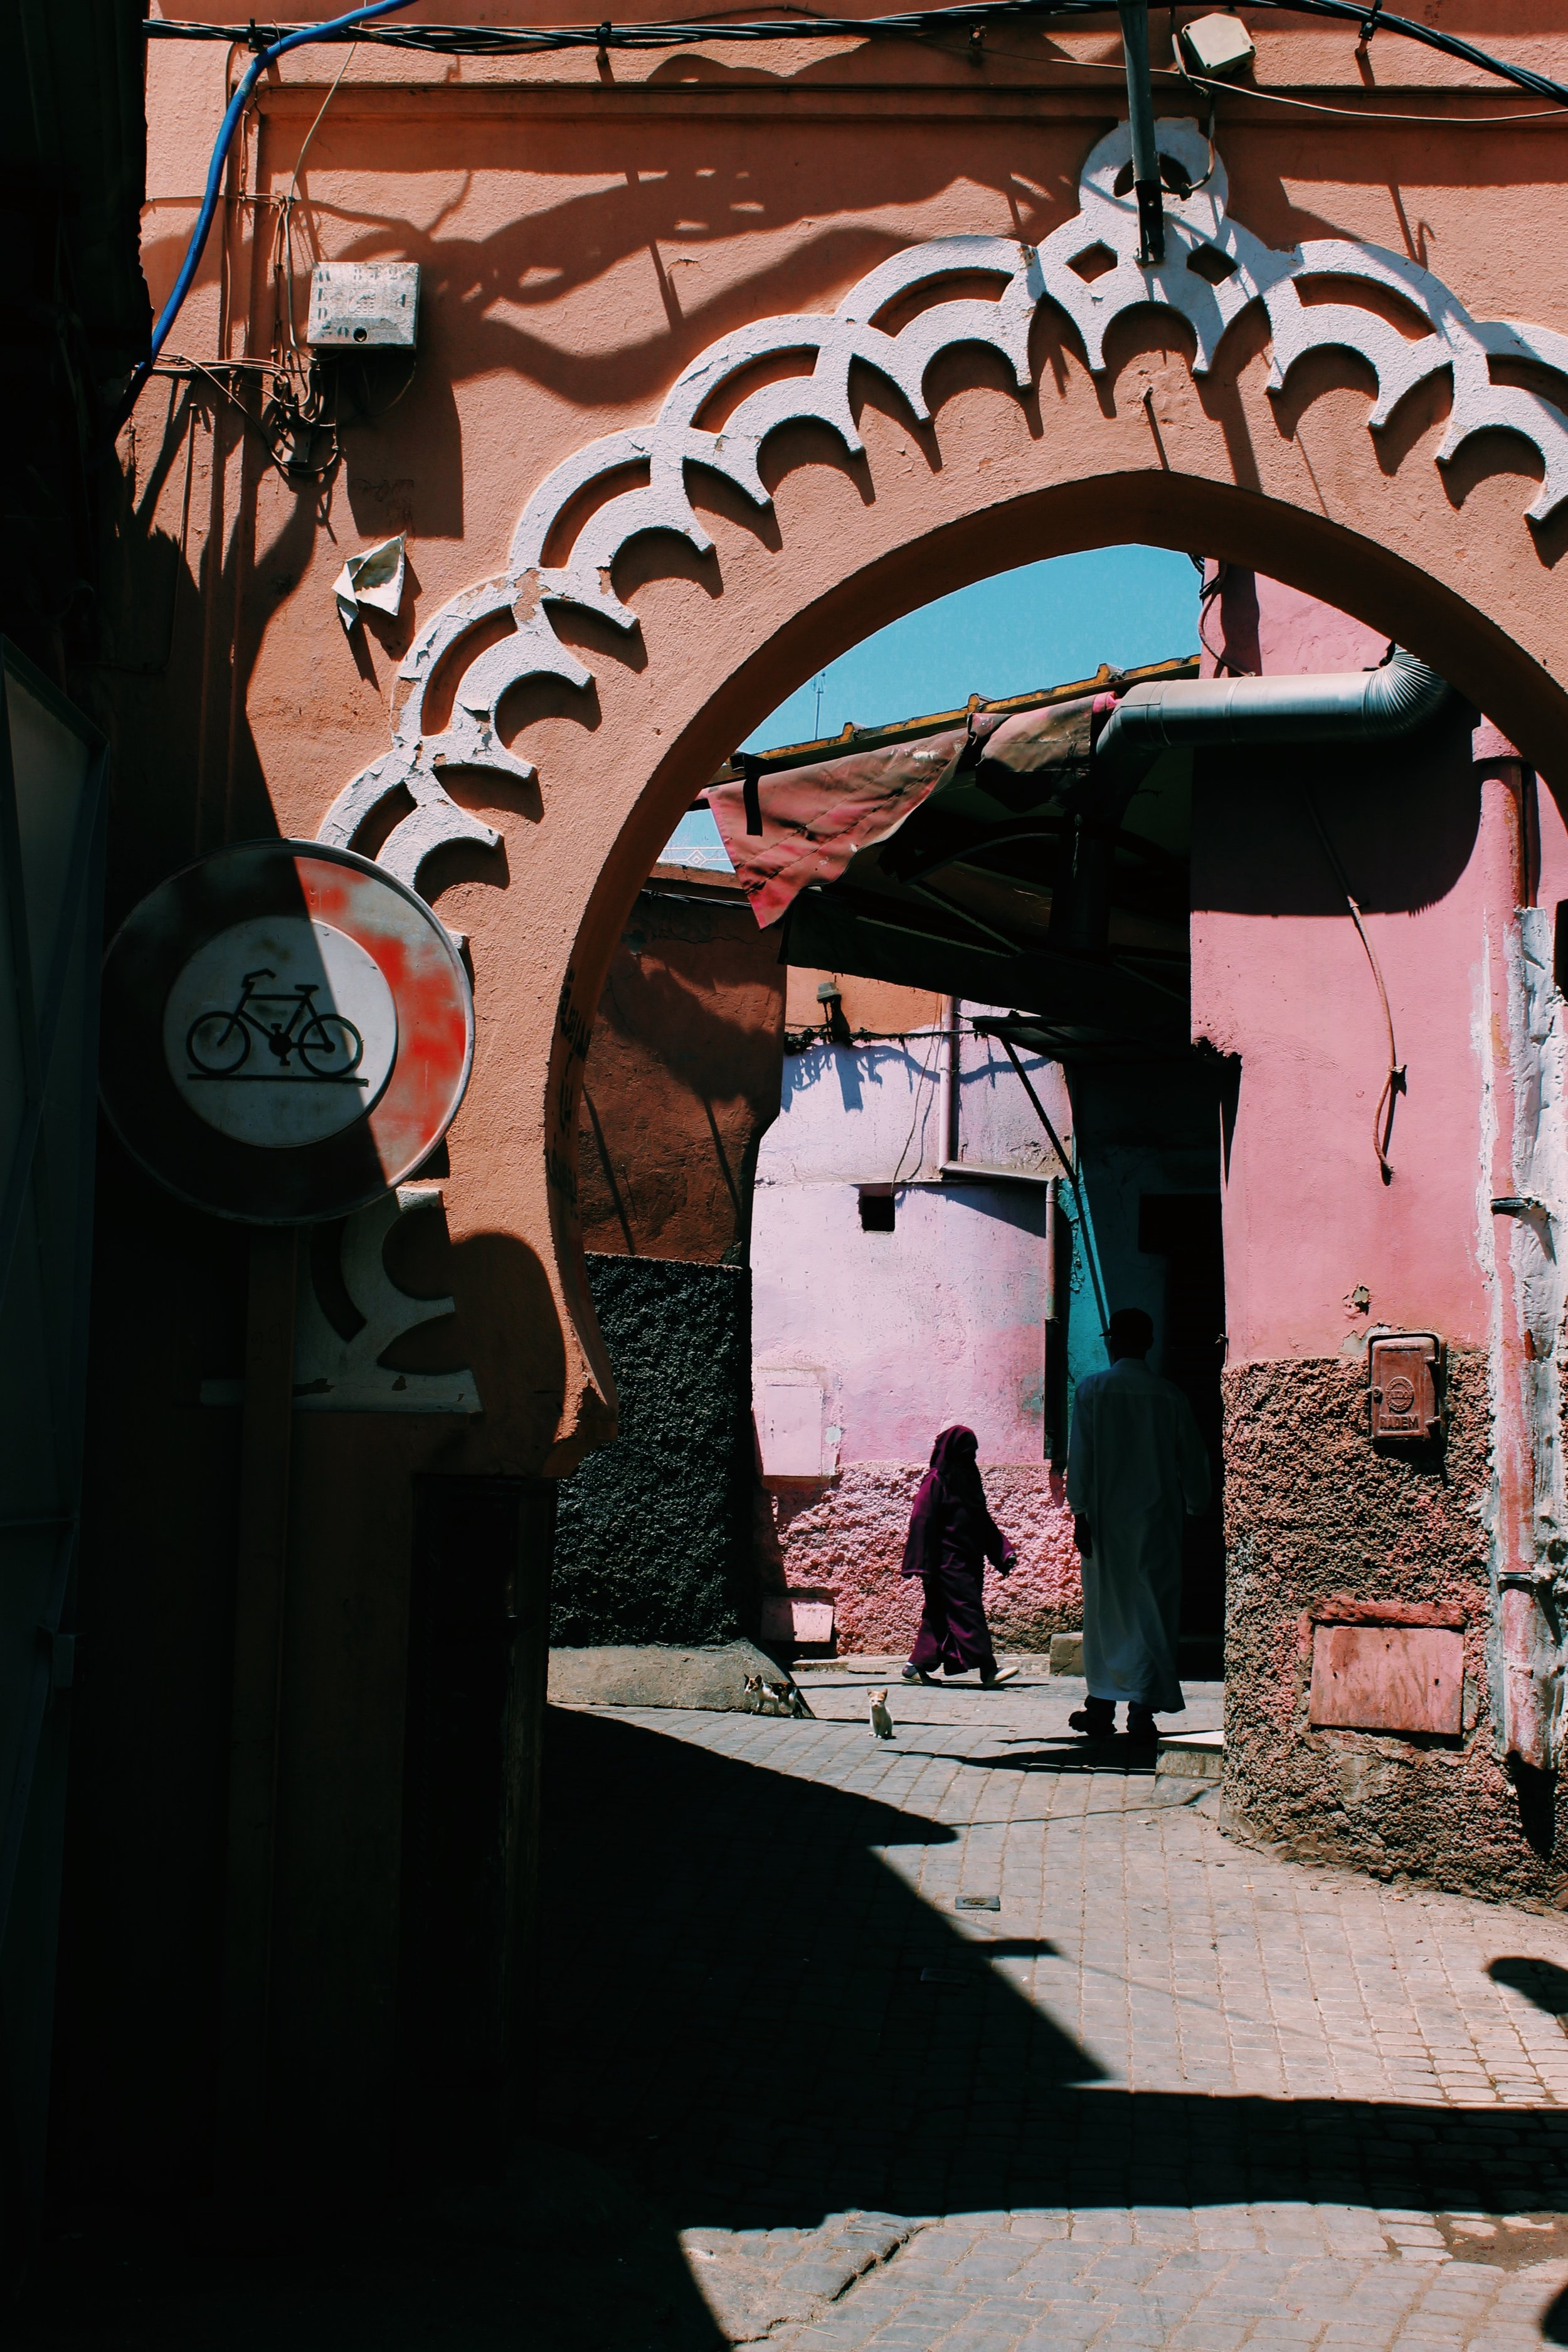 DAY 1: WEDNESDAY MARCH 25, 2020MARRAKECH - Transfer from the airport to your riad nestled in the intriguing walled Medina of Marrakech.Moroccan dinner.Overnight at private riad.Meals included: Dinner (D)